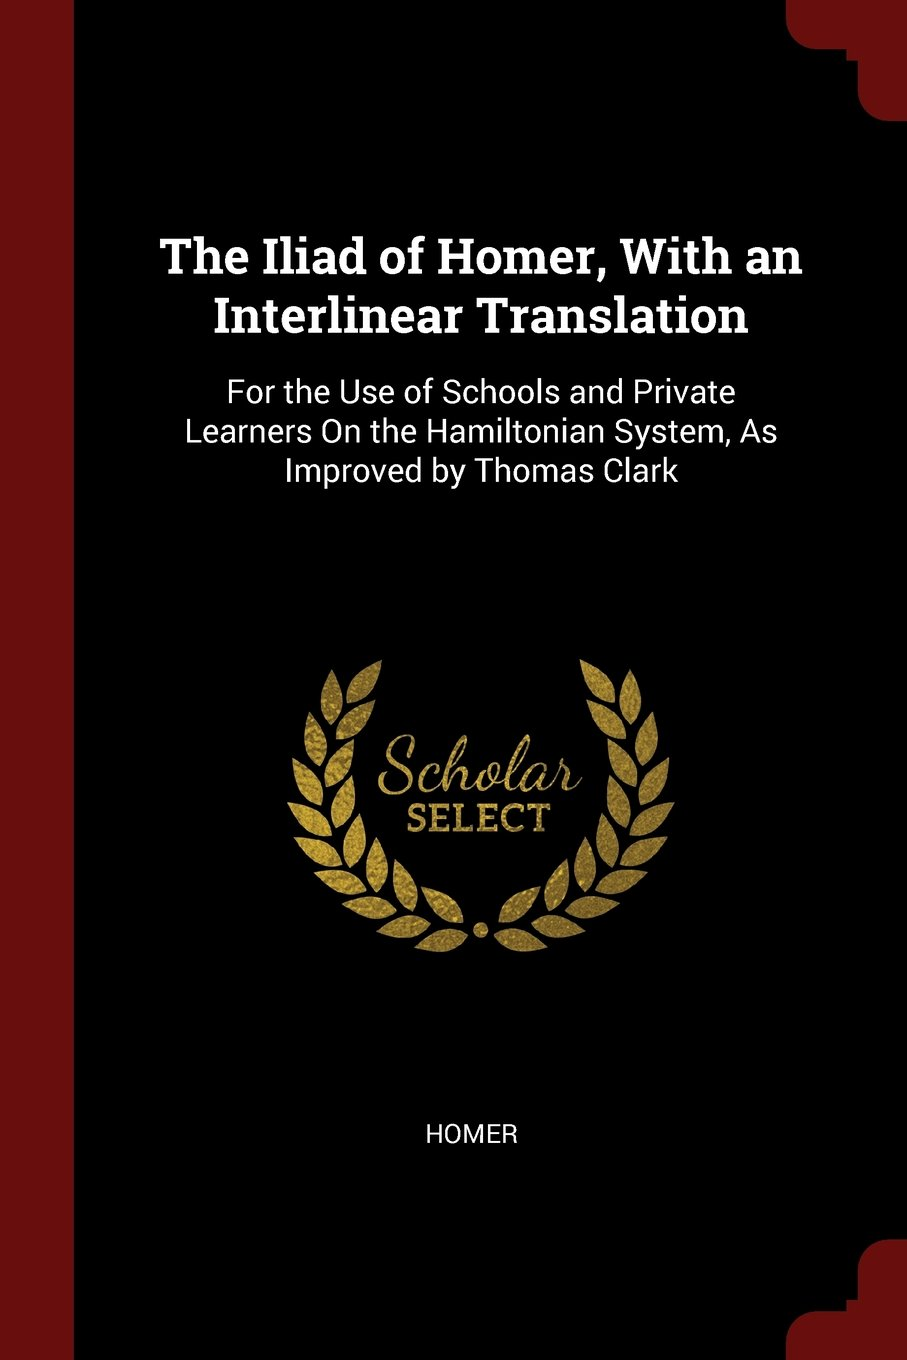 The Iliad of Homer, With an Interlinear Translation: For the Use of Schools and Private Learners On the Hamiltonian System, As Improved by Thomas Clark PDF